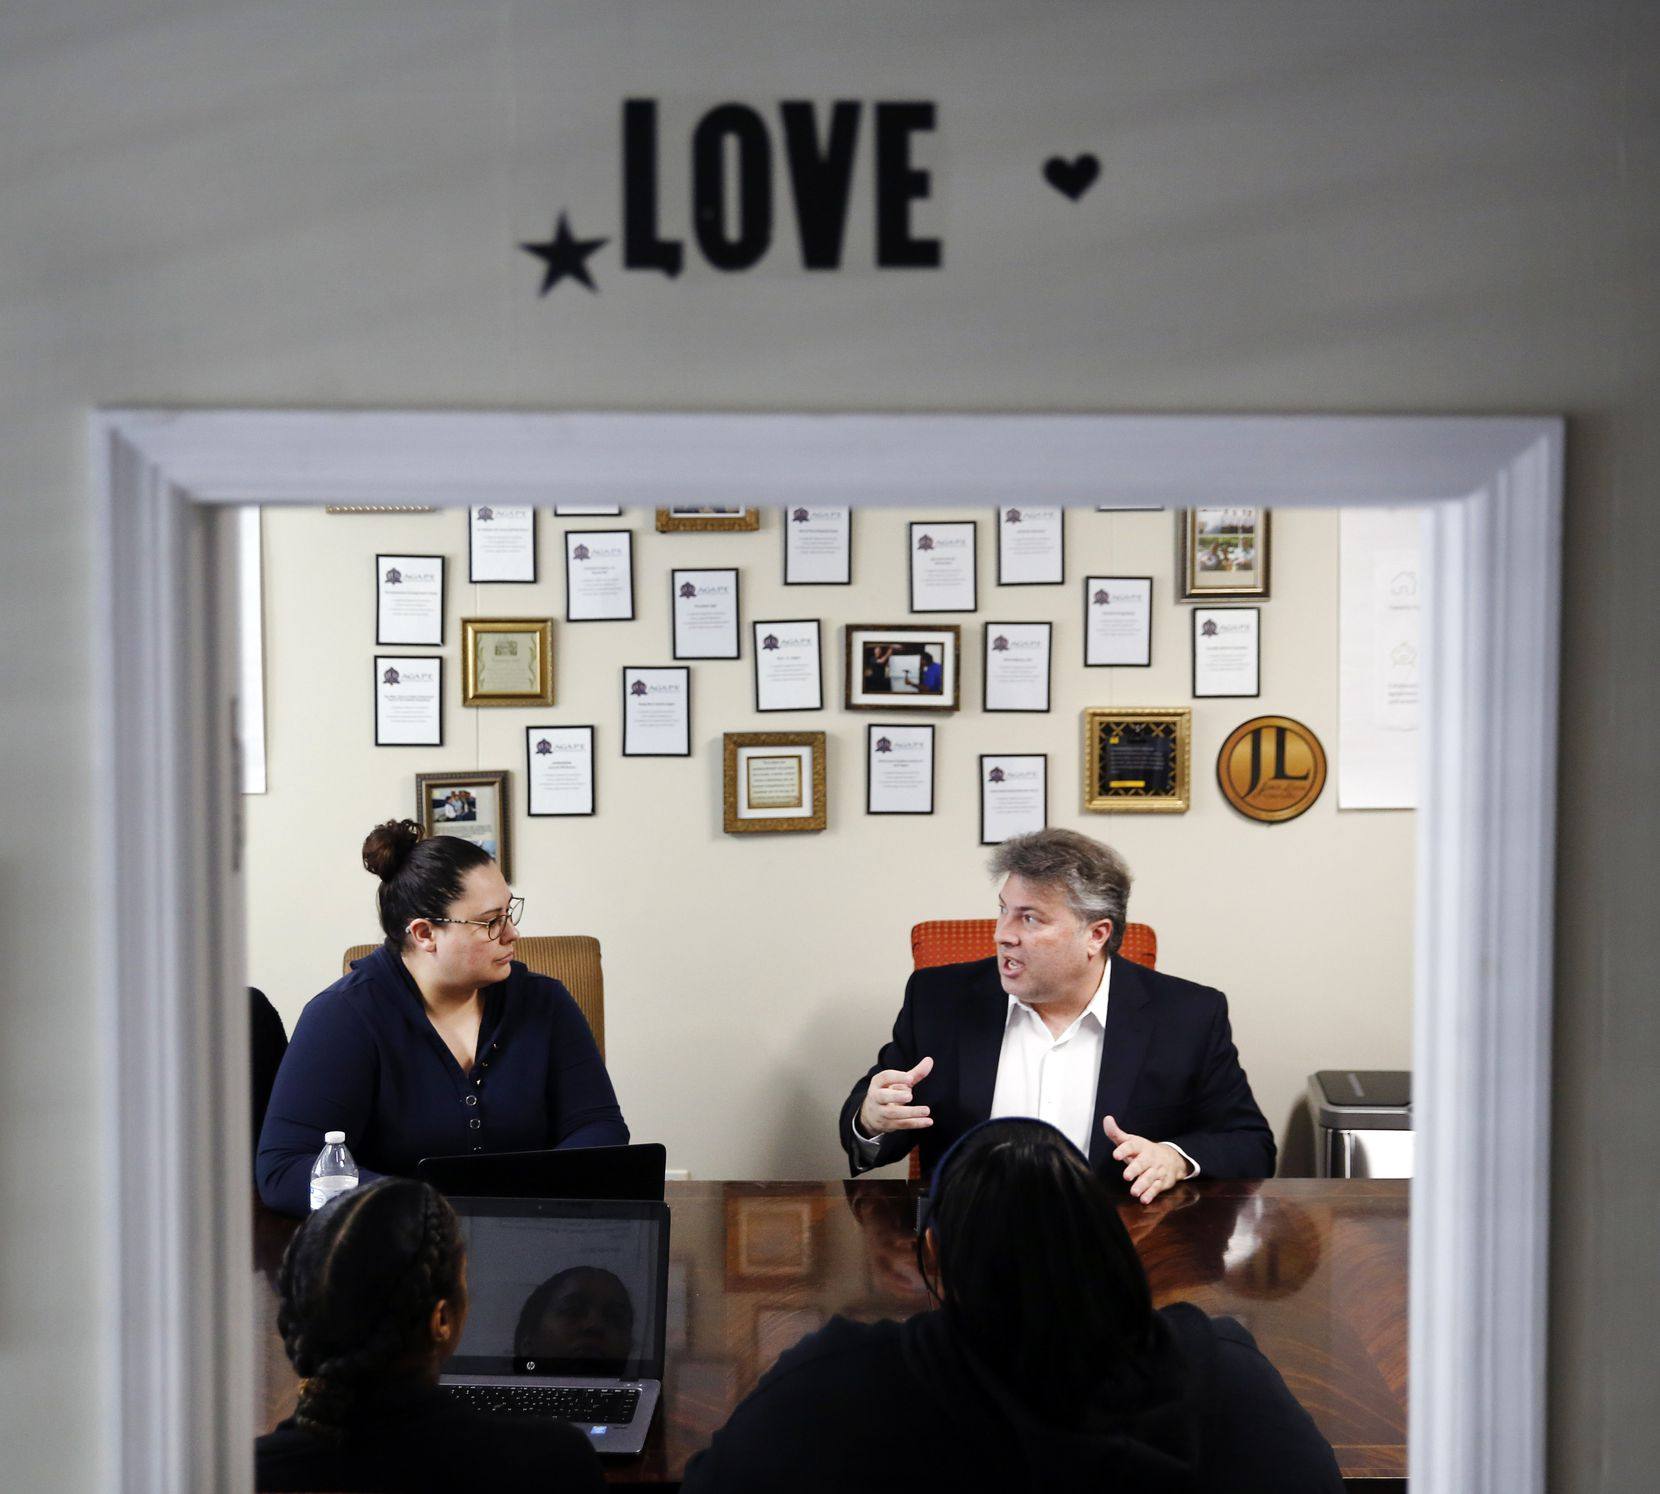 Financial counselor Todd Mark (right) delivers money advice to staffmember Adriana Balderas (facing, left) and others at Agape Resource & Assistance Center in Plano, Texas, Thursday, January 24, 2019.